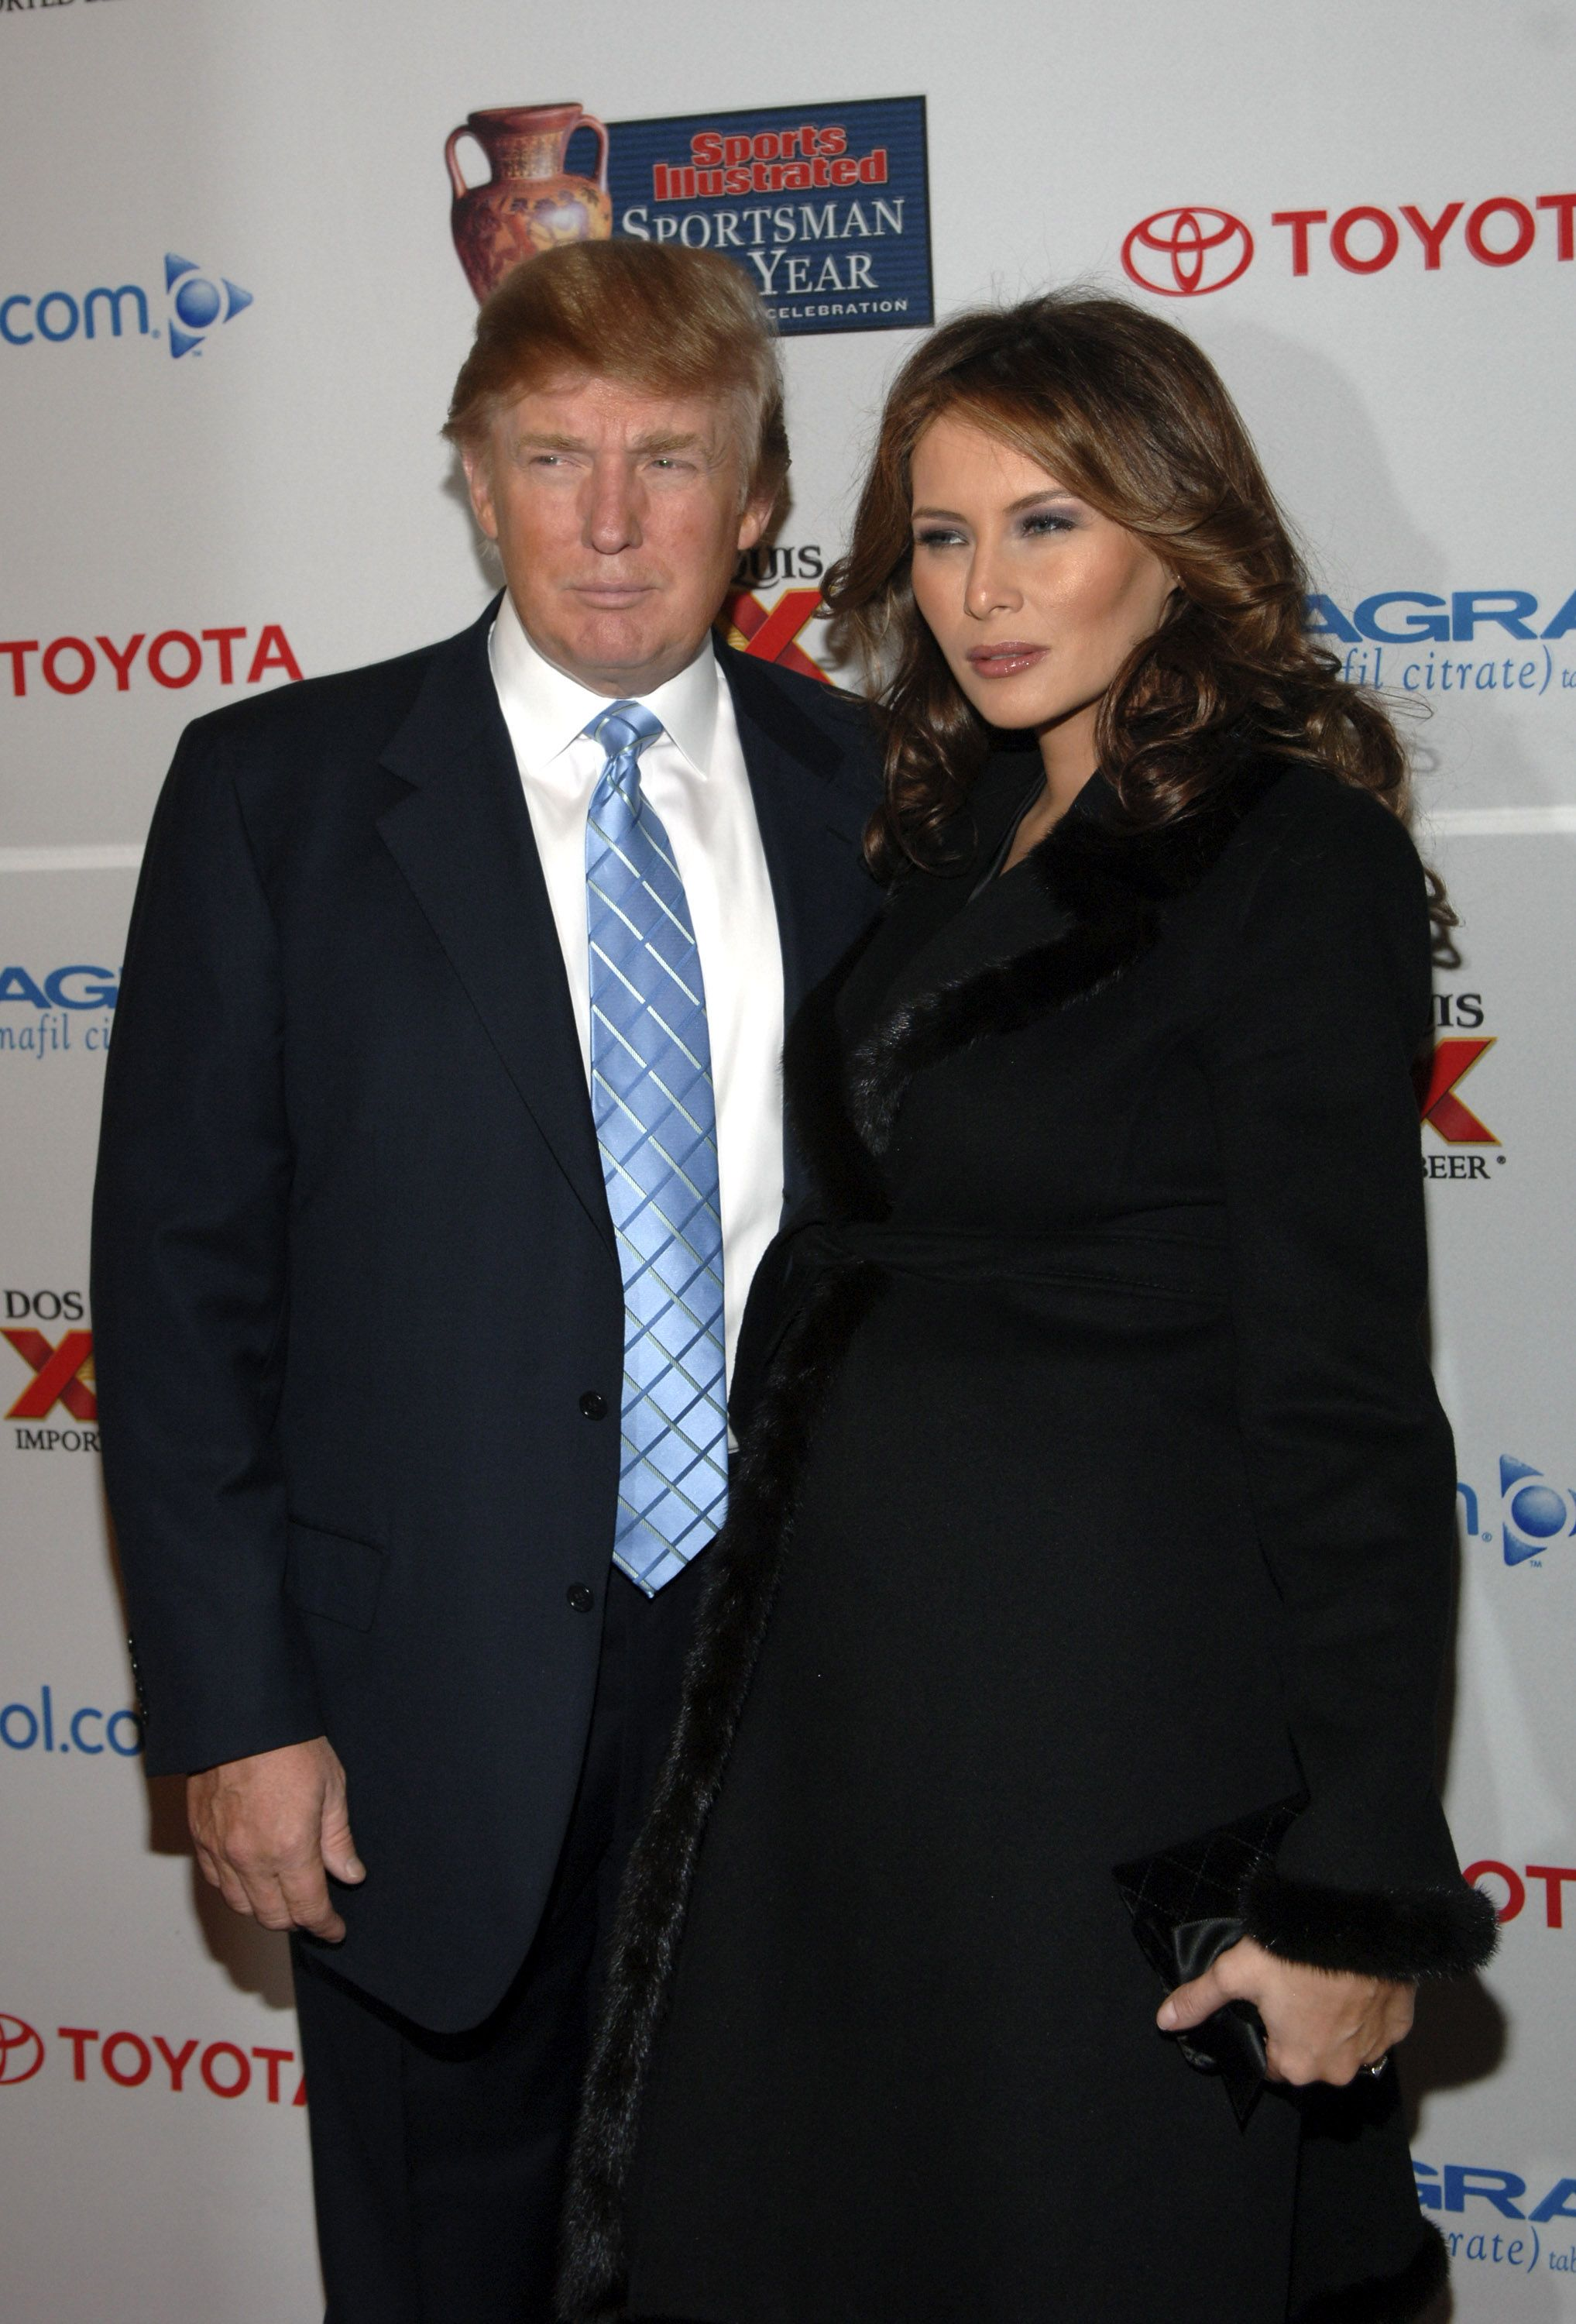 A Definitive Timeline of Donald and Melania Trumps Relationship